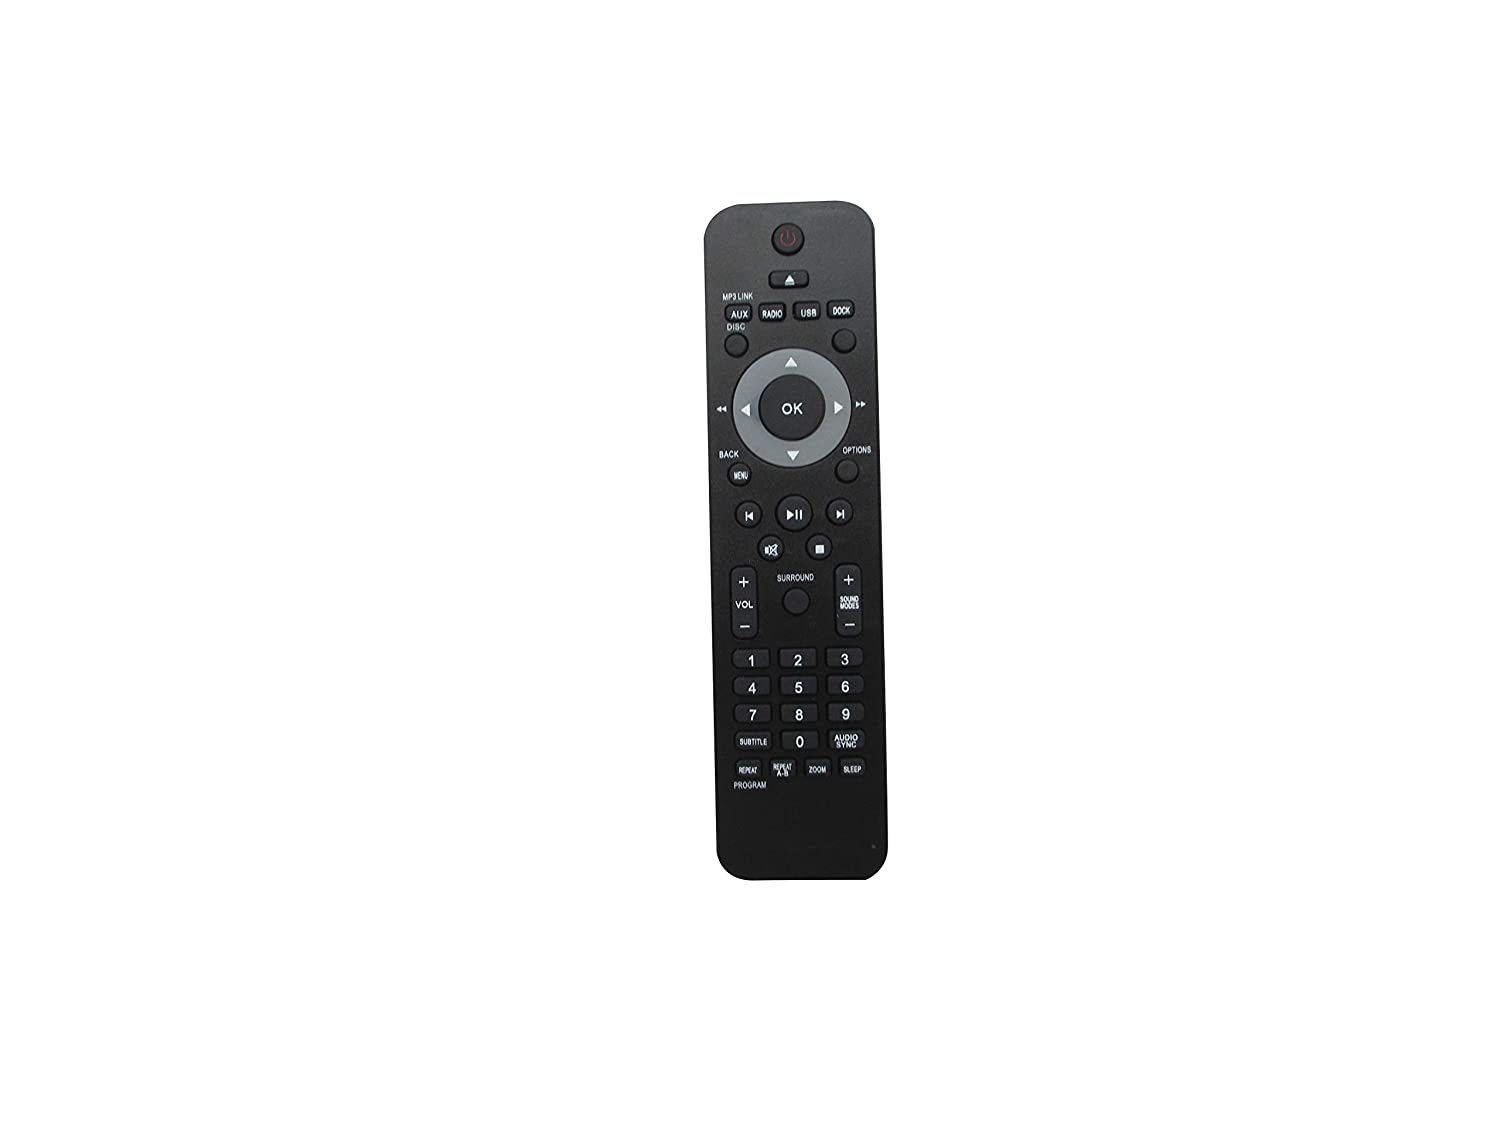 Hotsmtbang Replacement Remote Control for Philips 996510021121 HTS3371 HTS3371/98 HTS3372D/F7B HTS3371D HTS3371D/F7 HTS3317D/F7B HTS3371D/F7E HTS3372D/F7B HTS3372D HTS3372D/F7 DVD Home Theater System